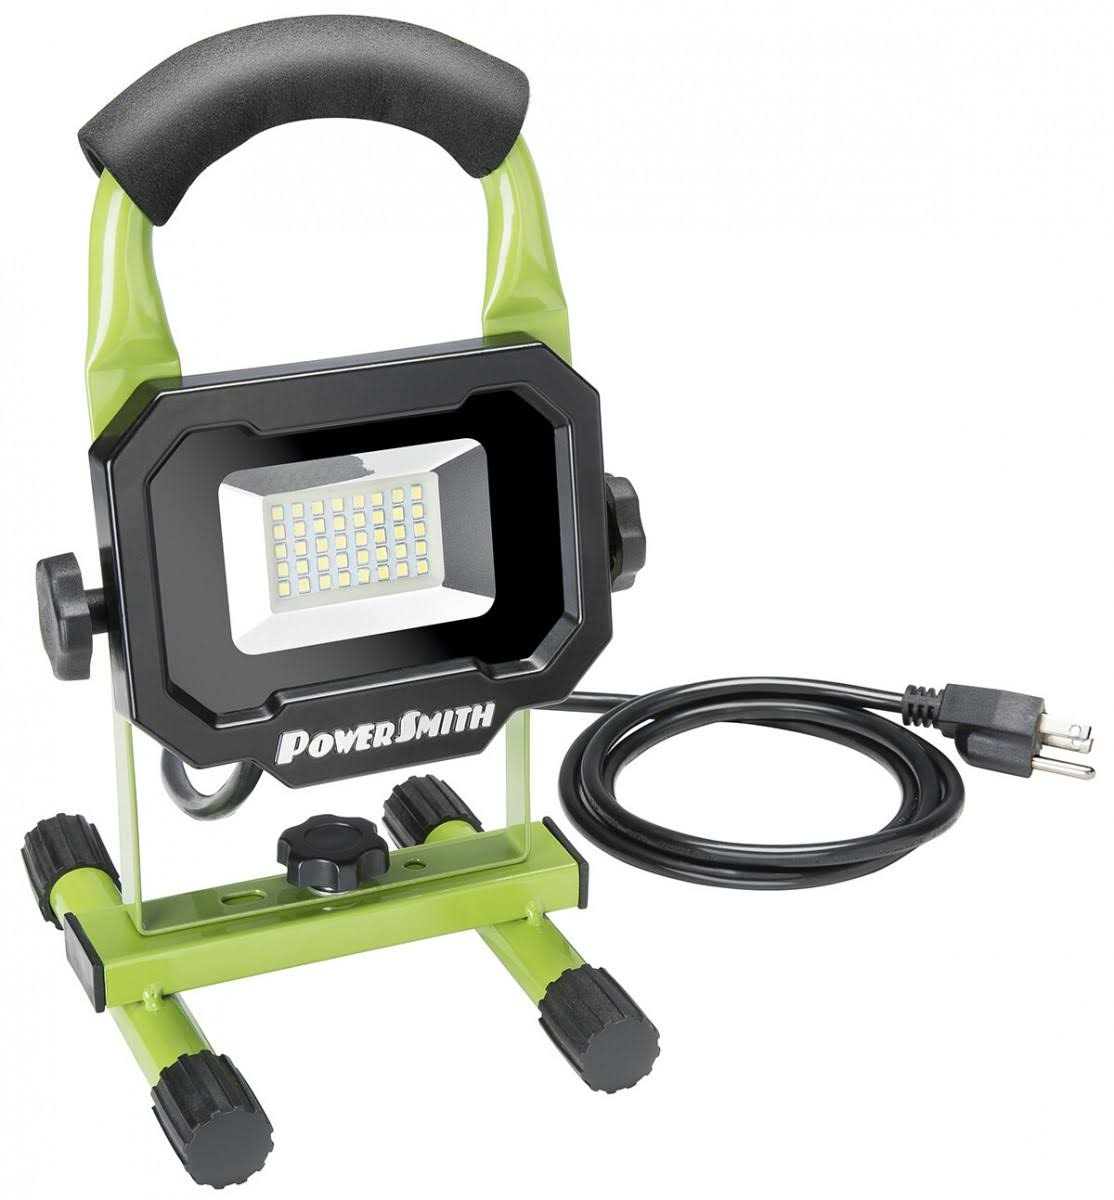 PowerSmith PWL1118BS LED Work Light - 15W 1400 lumen LED, 2.41lb